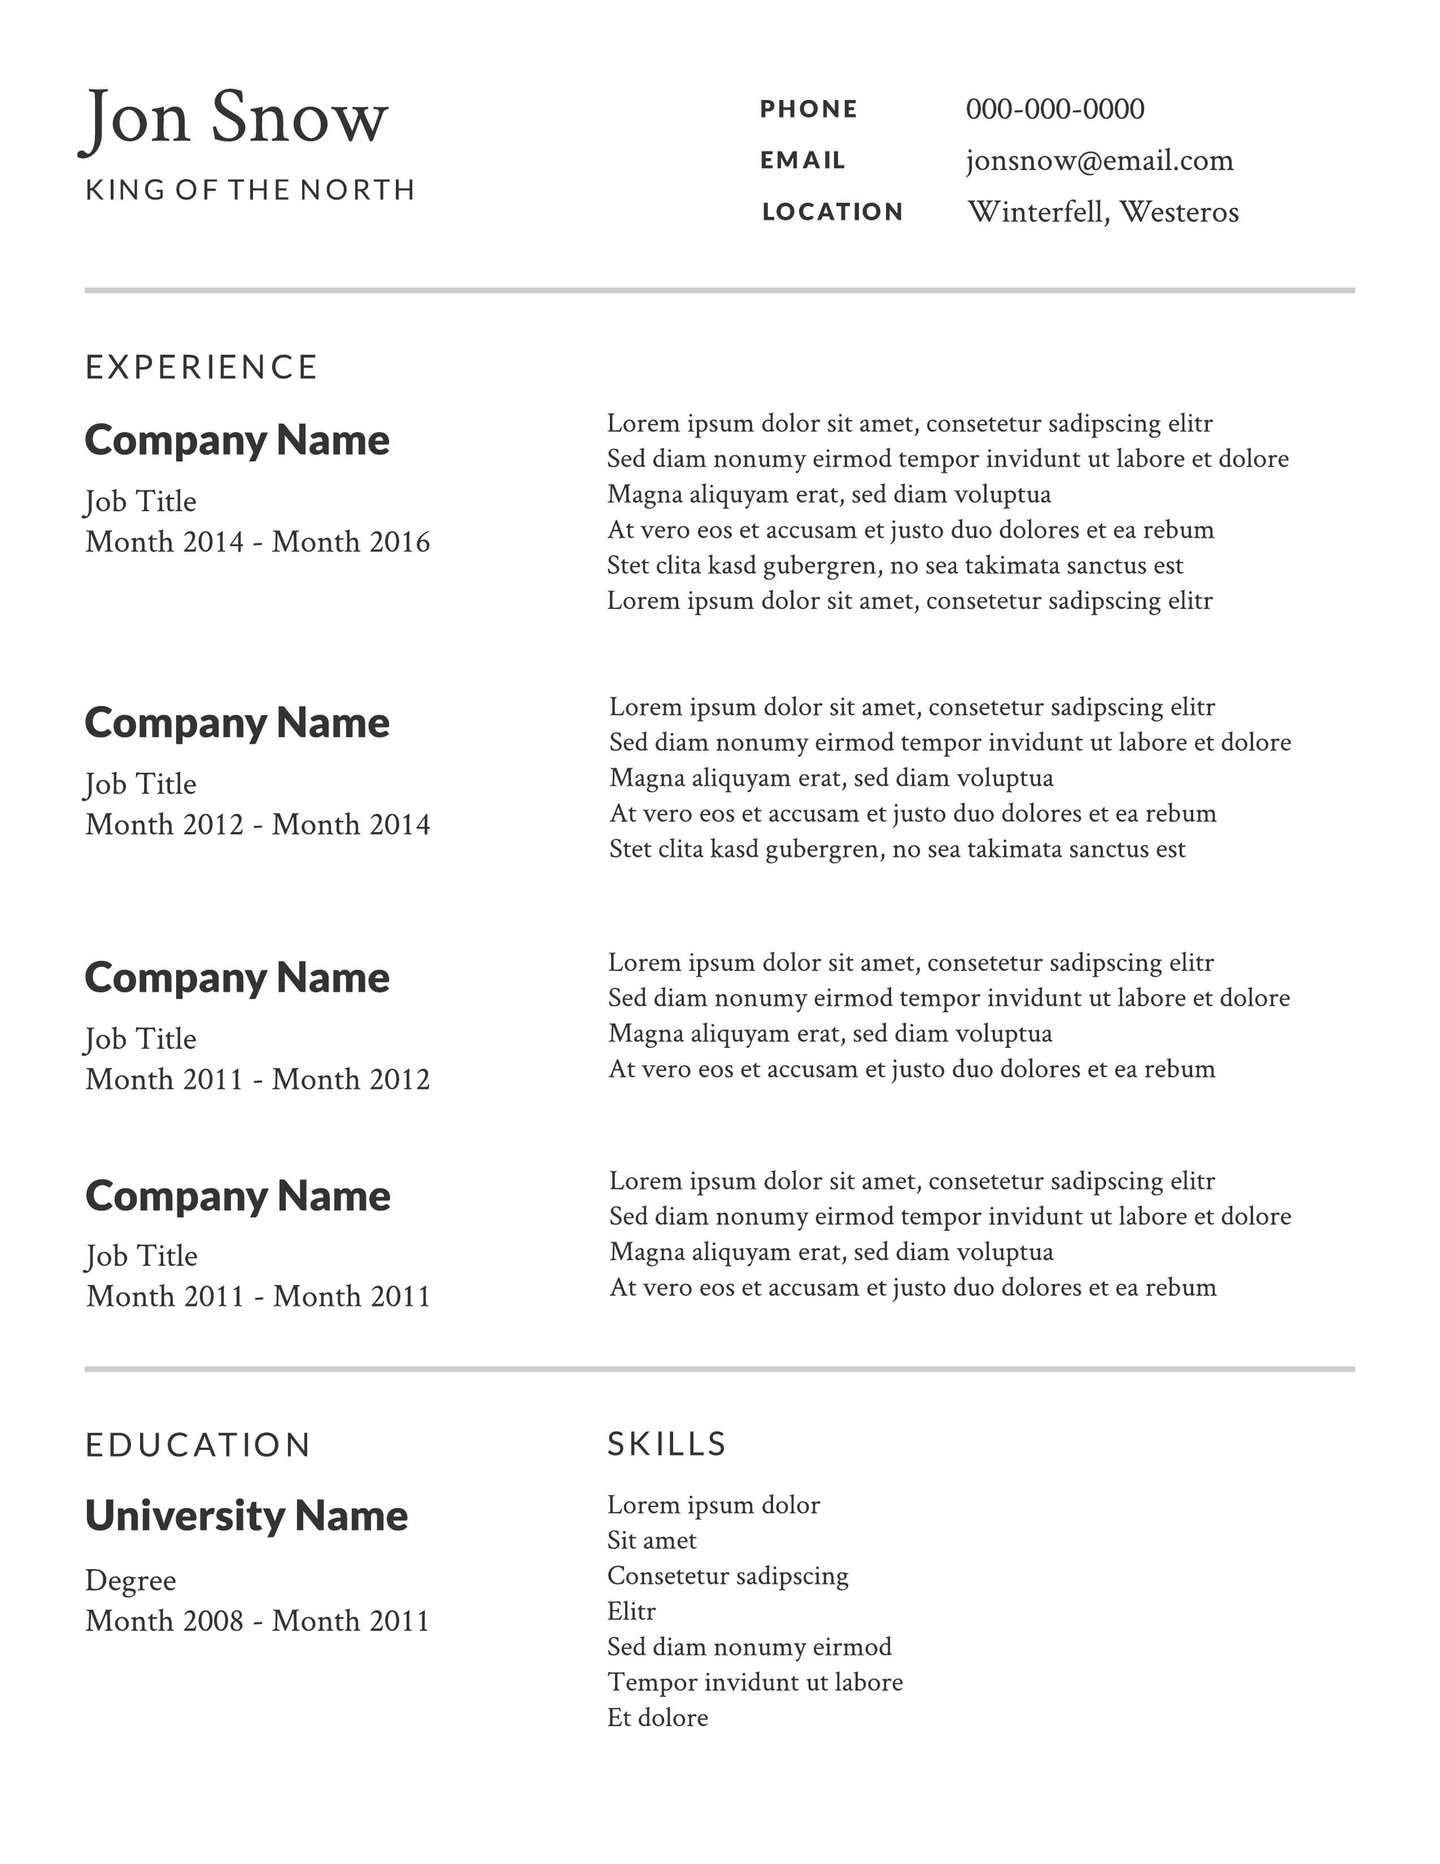 2 free resume templates examples lucidpress for Free reume templates